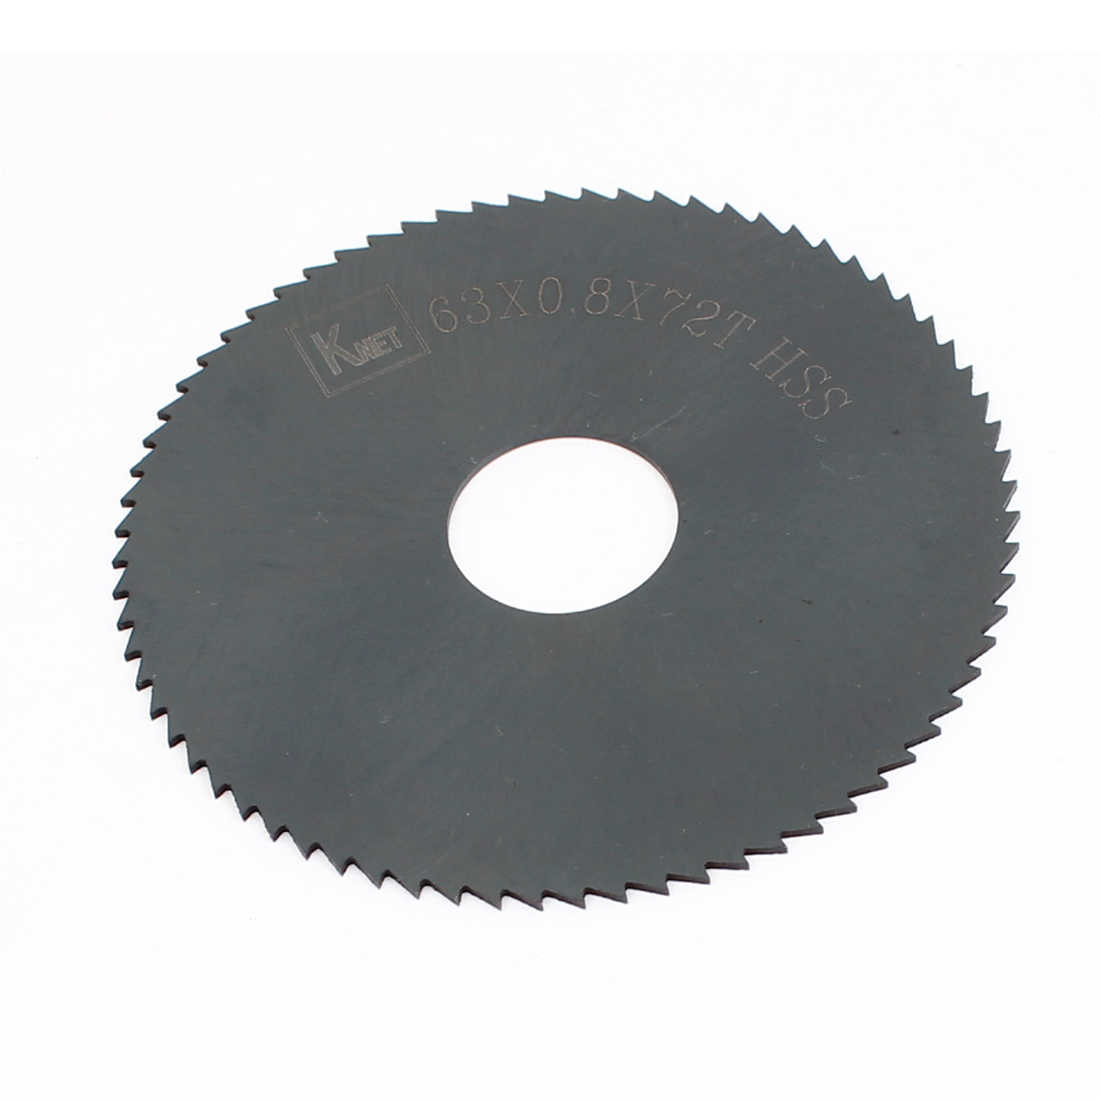 Unique Bargains 6.3cm x 0.8cm x 1.6cm 72 Teeth HSS Slitting Saw Blade Cutting Tool